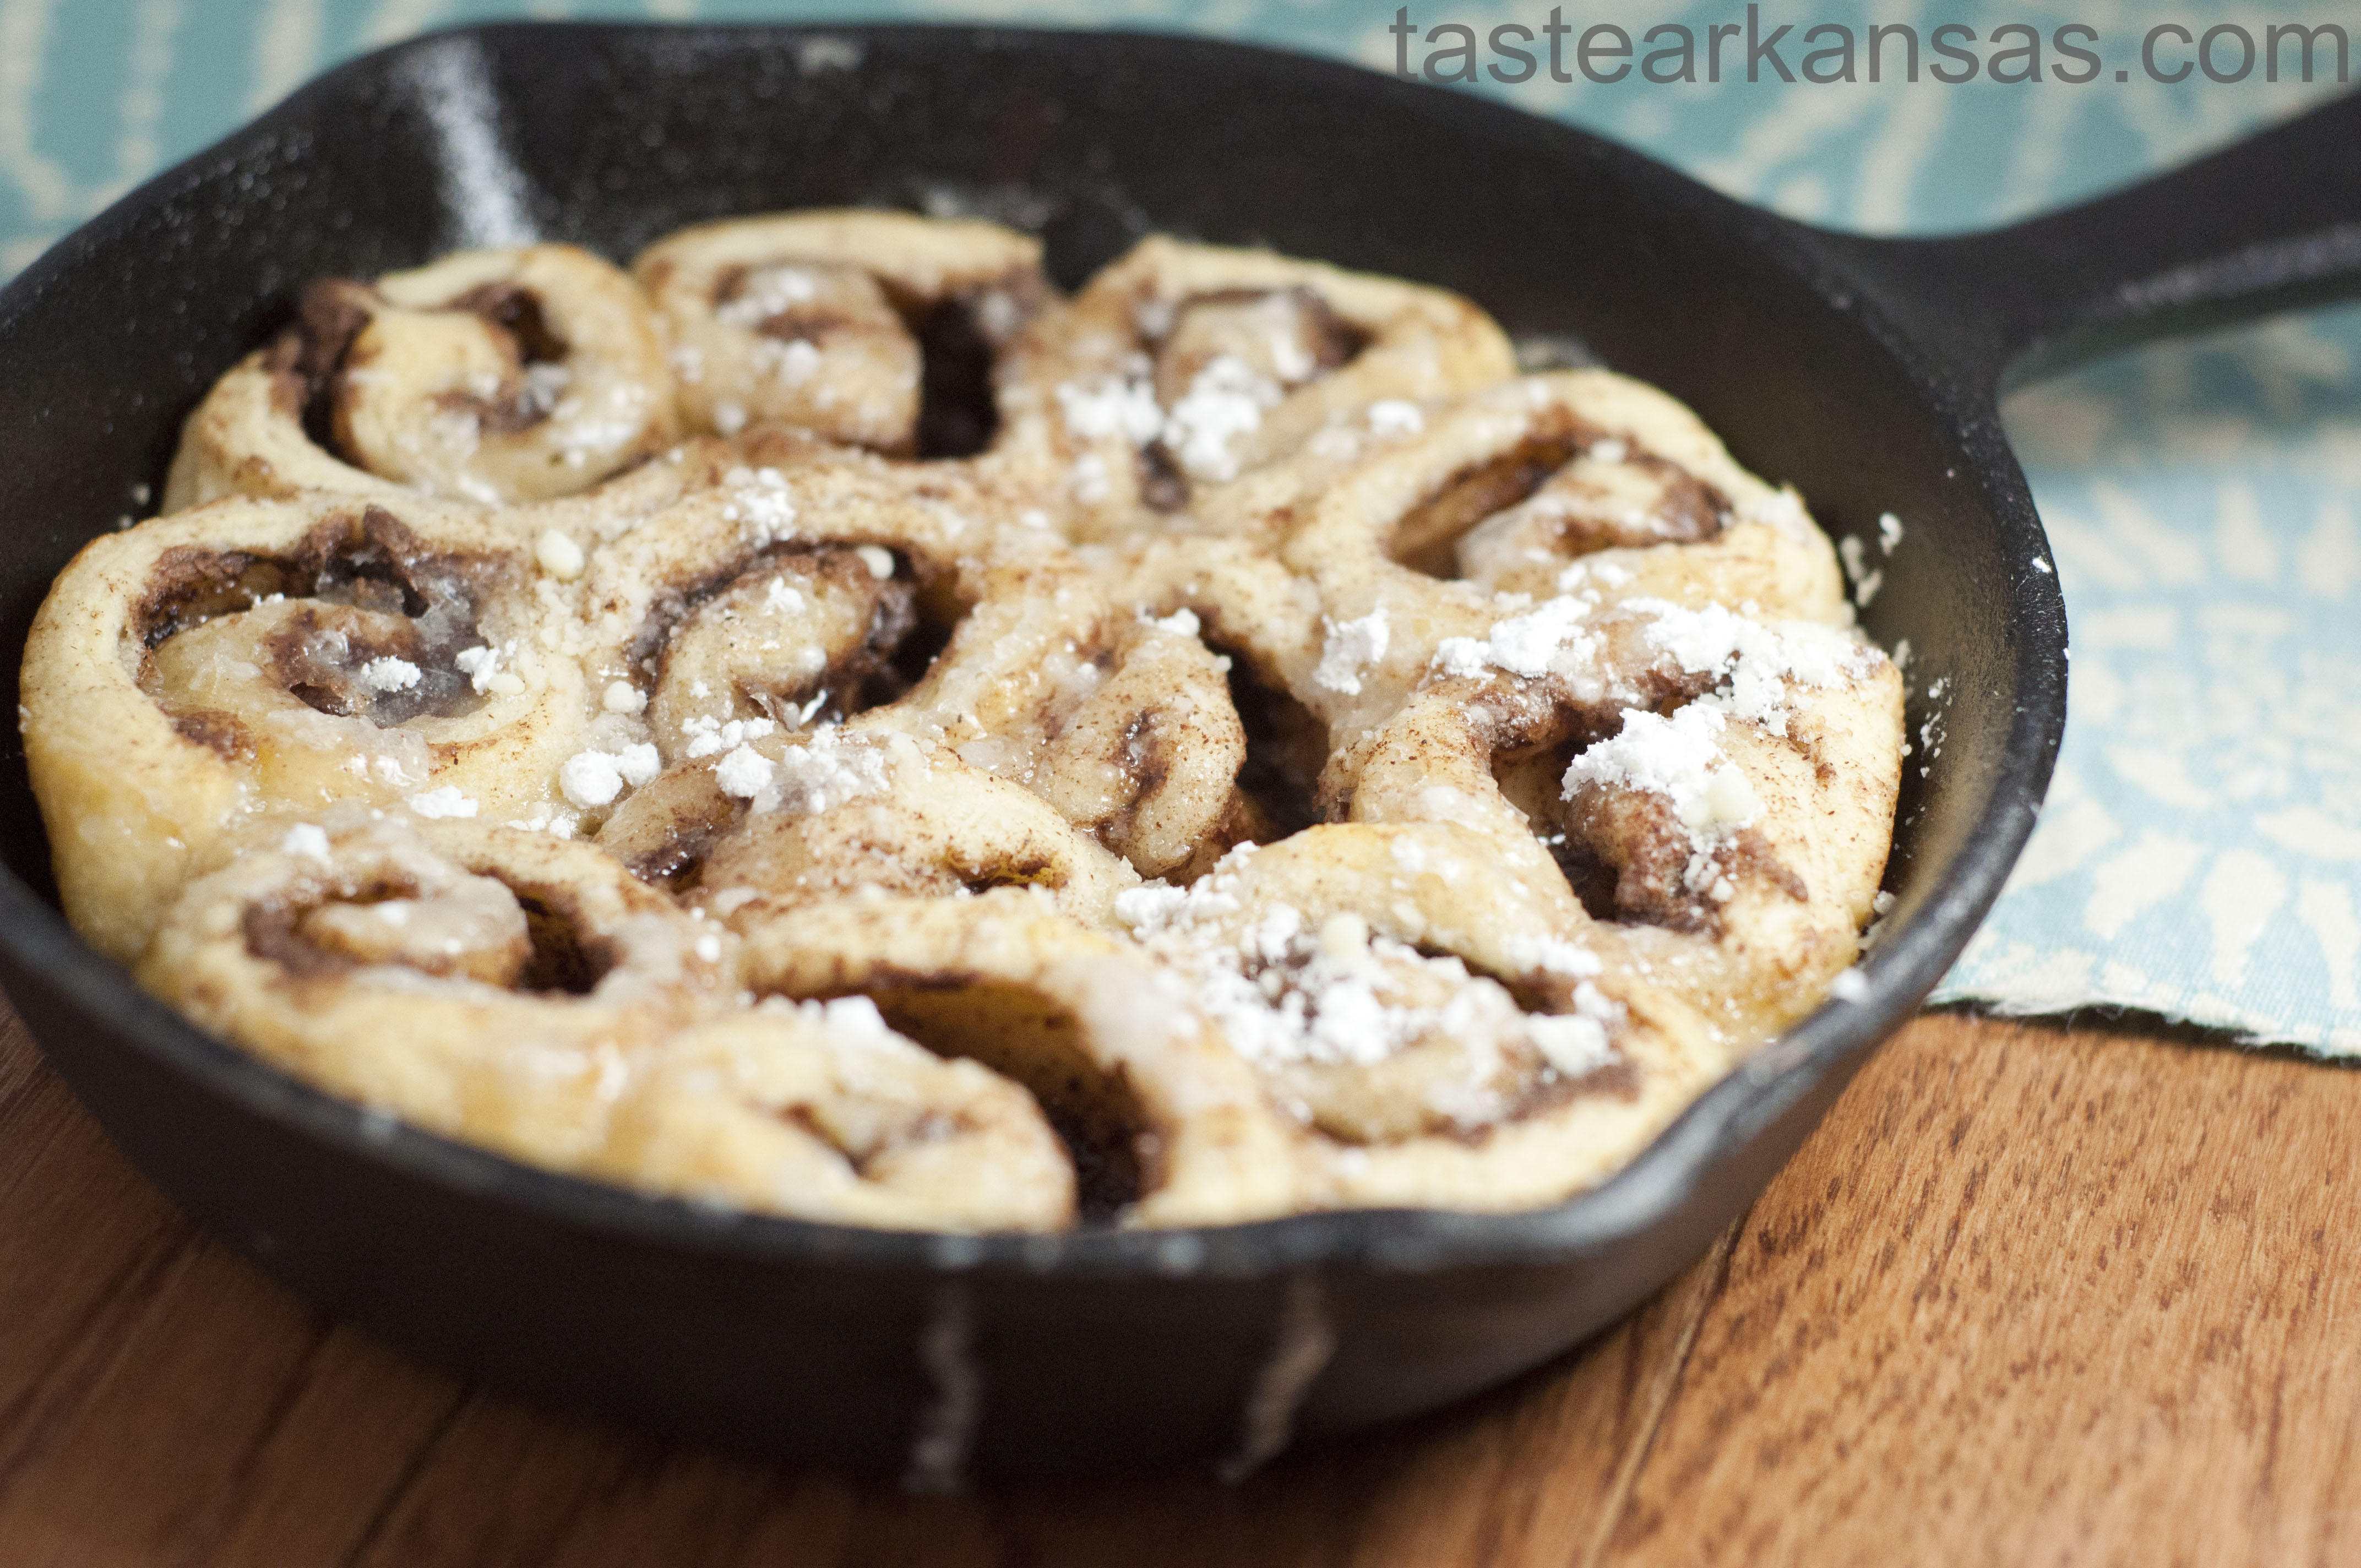 this image shows a cast iron skillet full of nutella cinnamon rolls